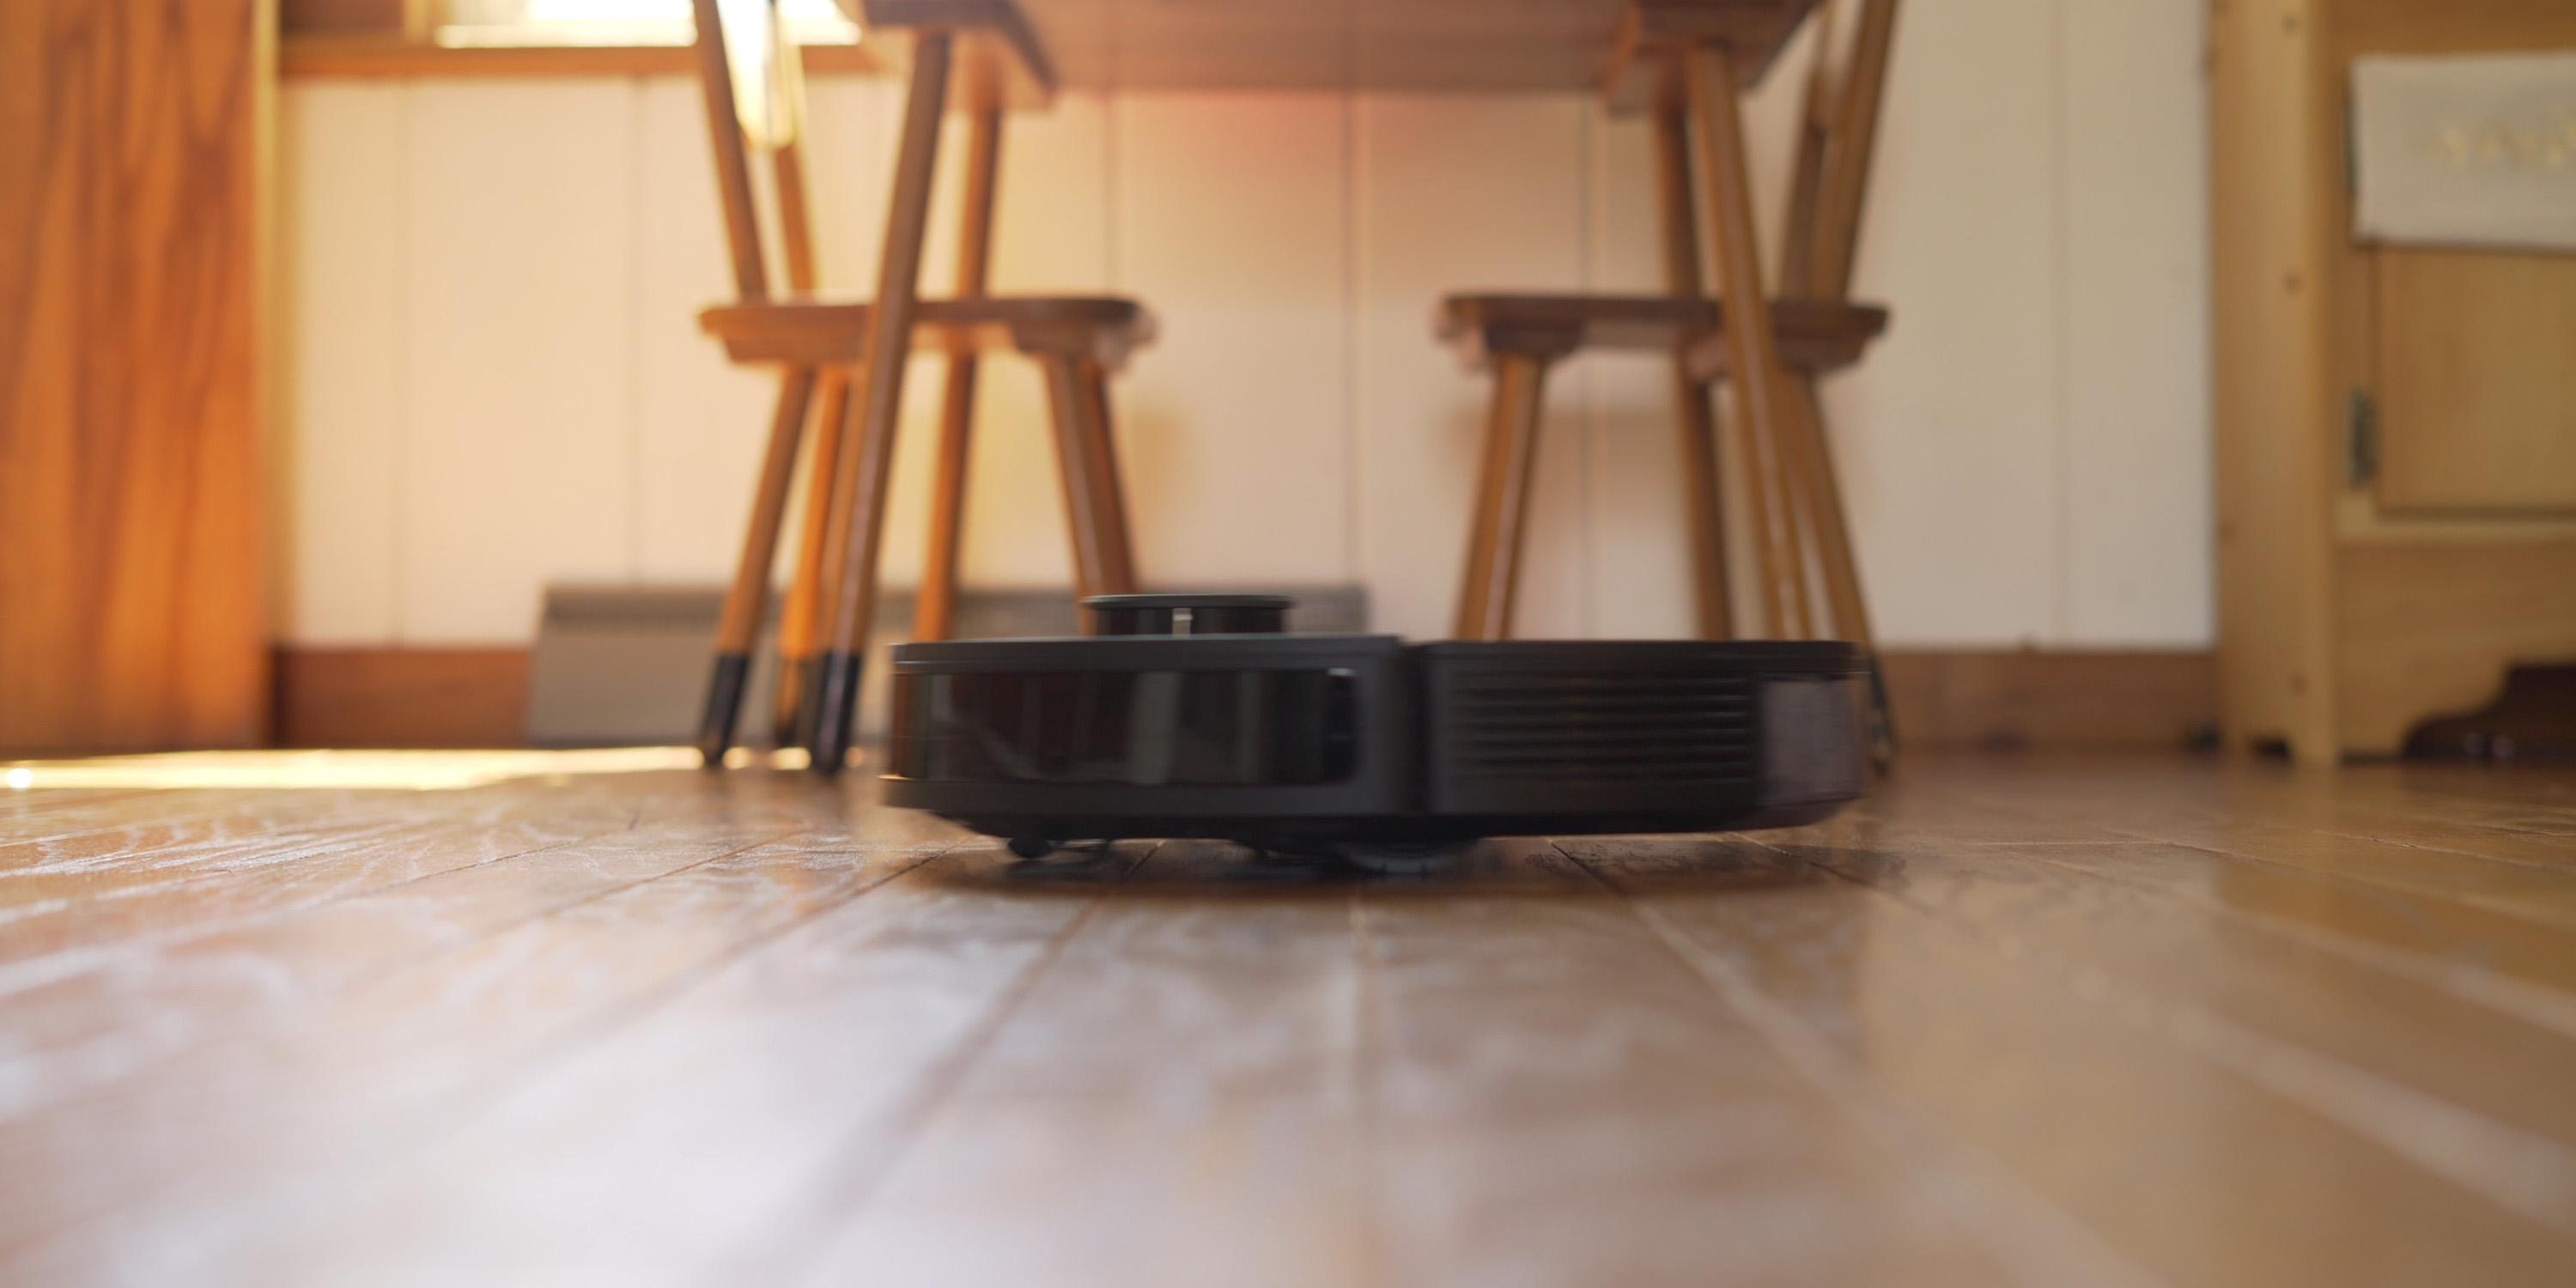 Deebot T8 cleaning on wood floor